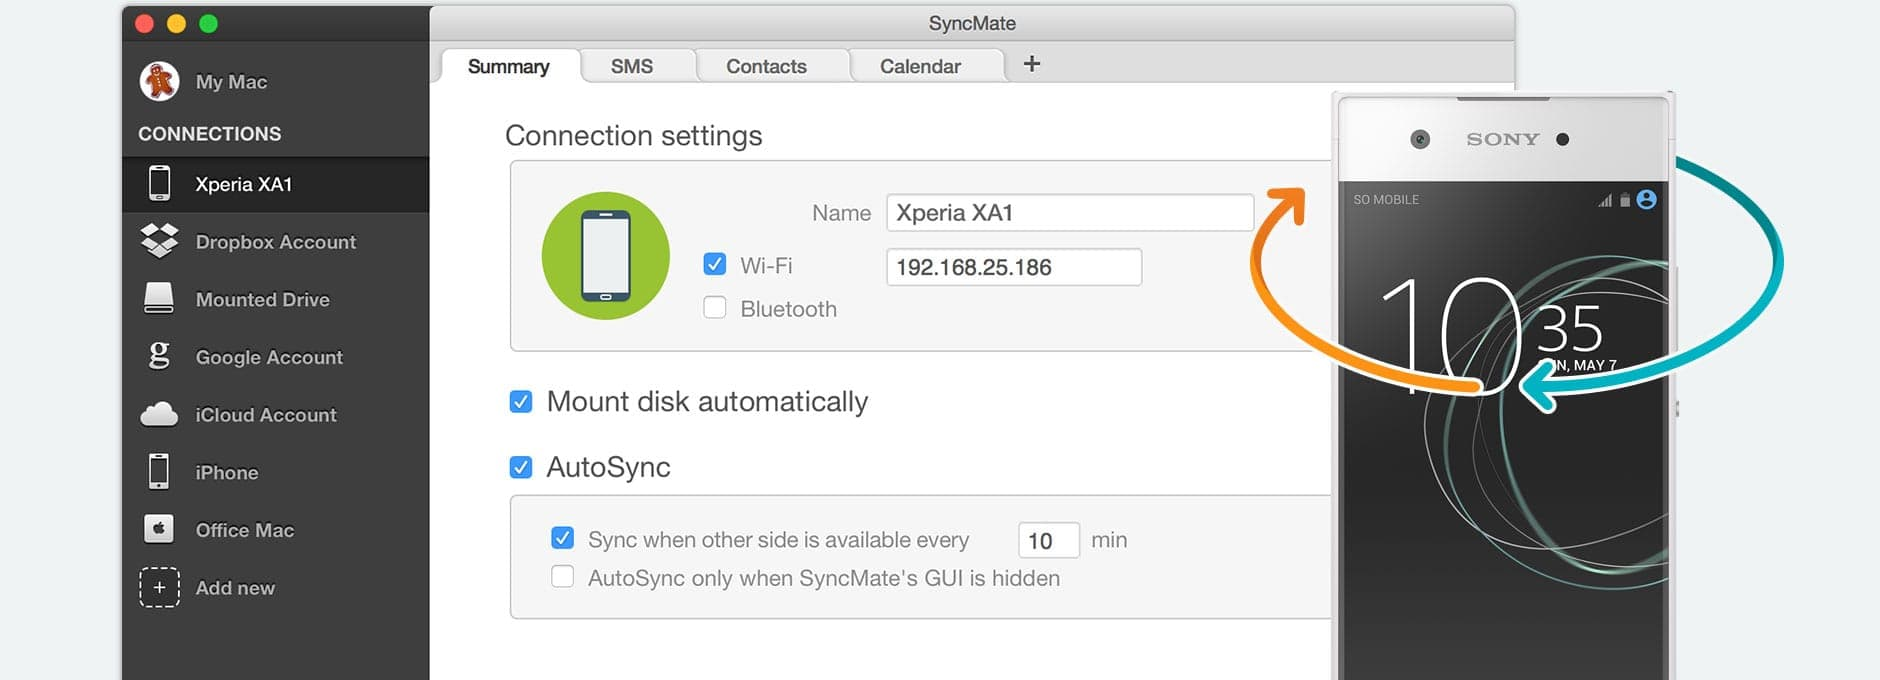 Synchronize Sony Xperia with Mac for free